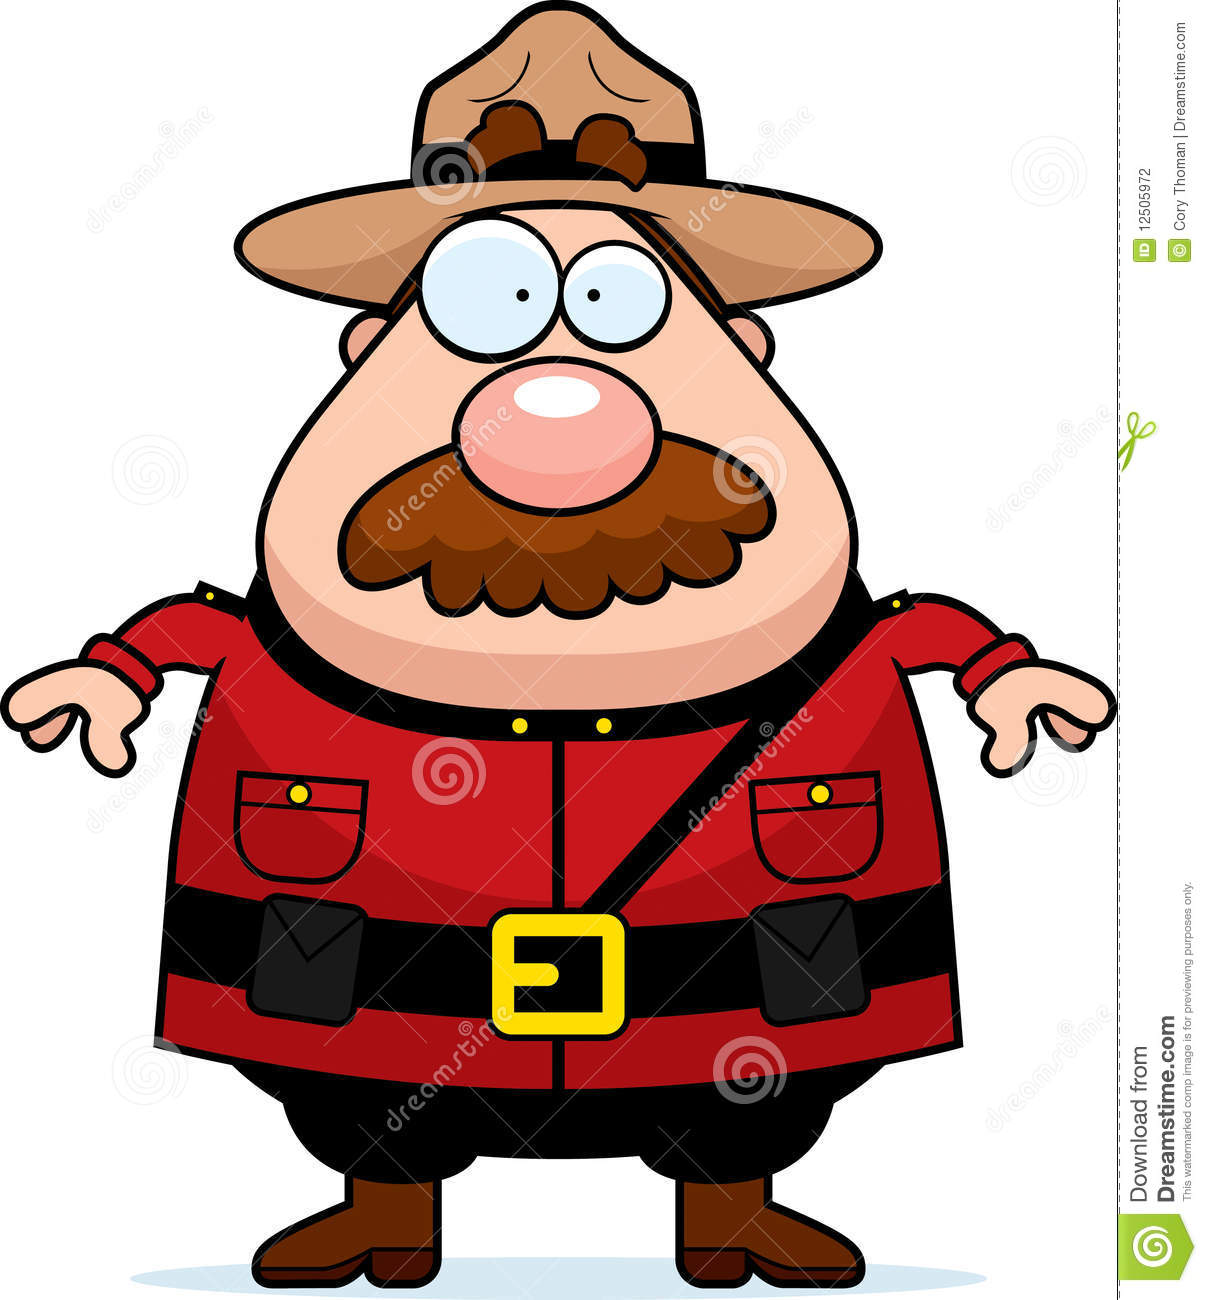 Canadian mountie clipart 4 » Clipart Station.